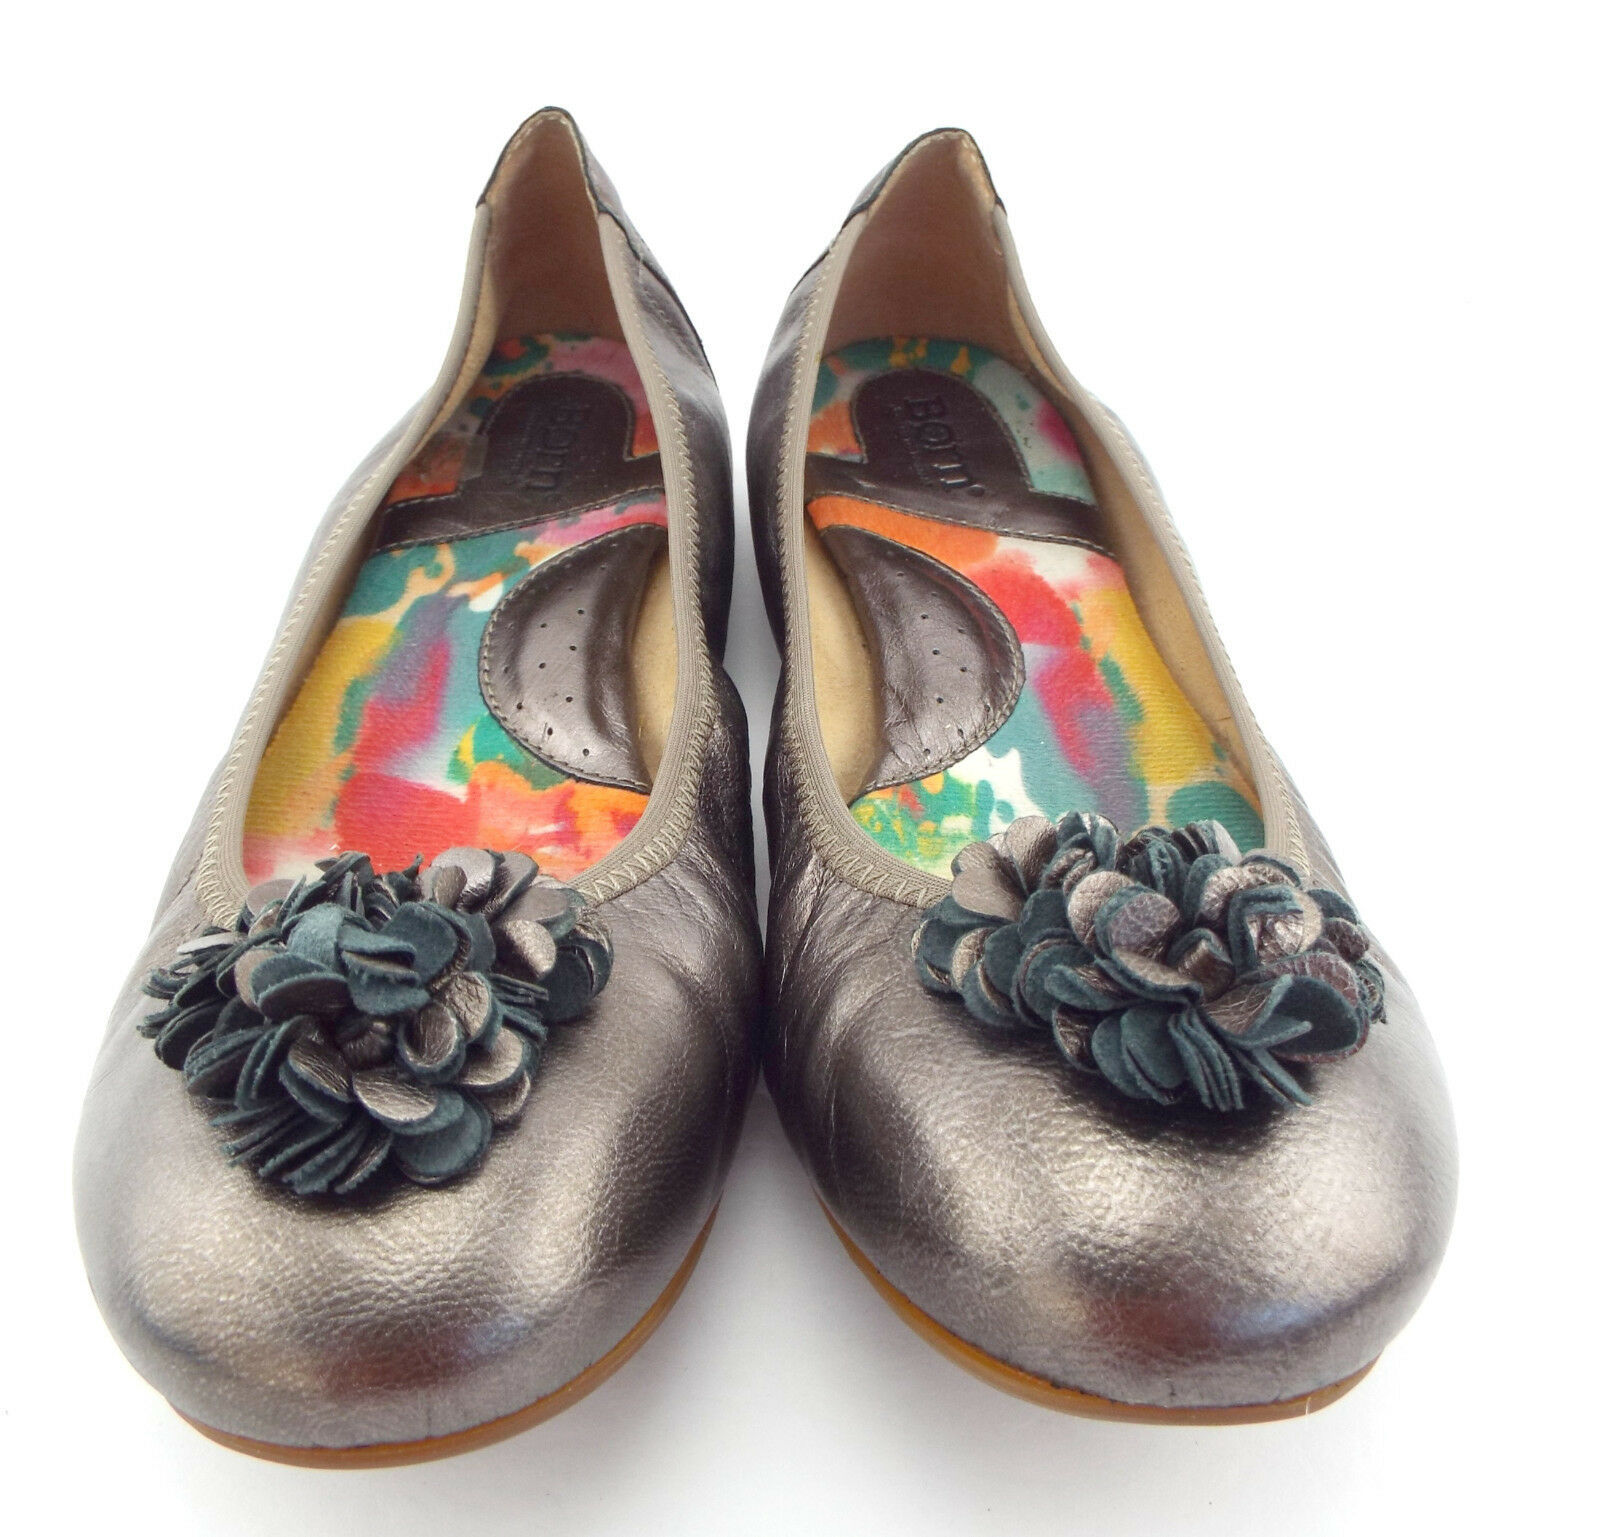 BORN Size 9.5 Pewter Metallic Ballet Flats Shoes 9 1/2 w/ Flower